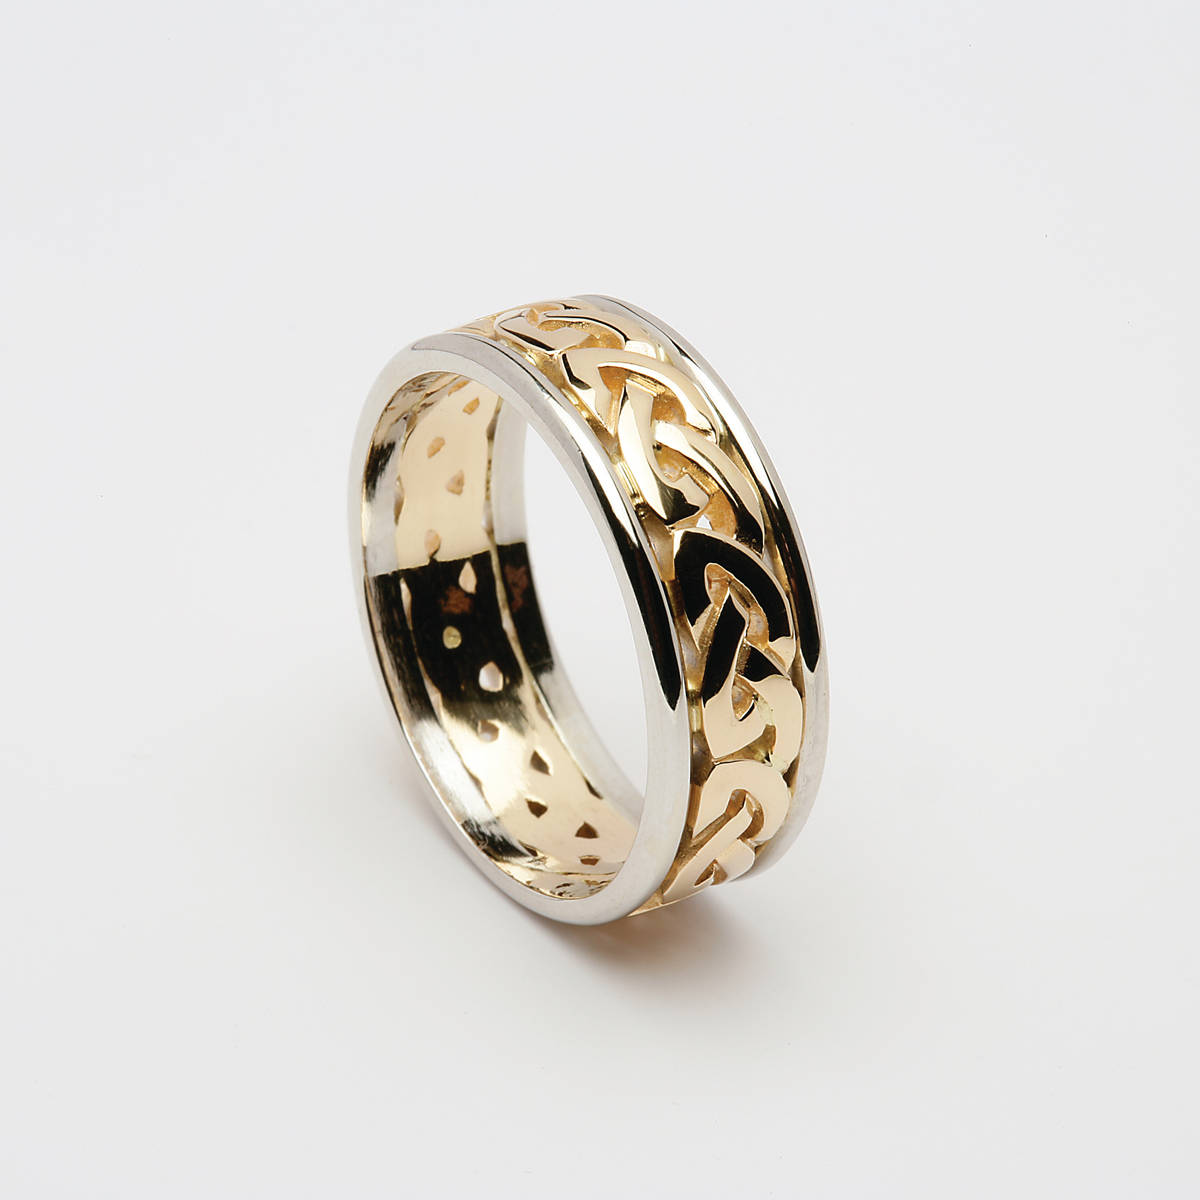 A 10 carat yellow and white gold Celtic knot man's wedding or eternity ring.Very comfortable to wear and very distinctive.